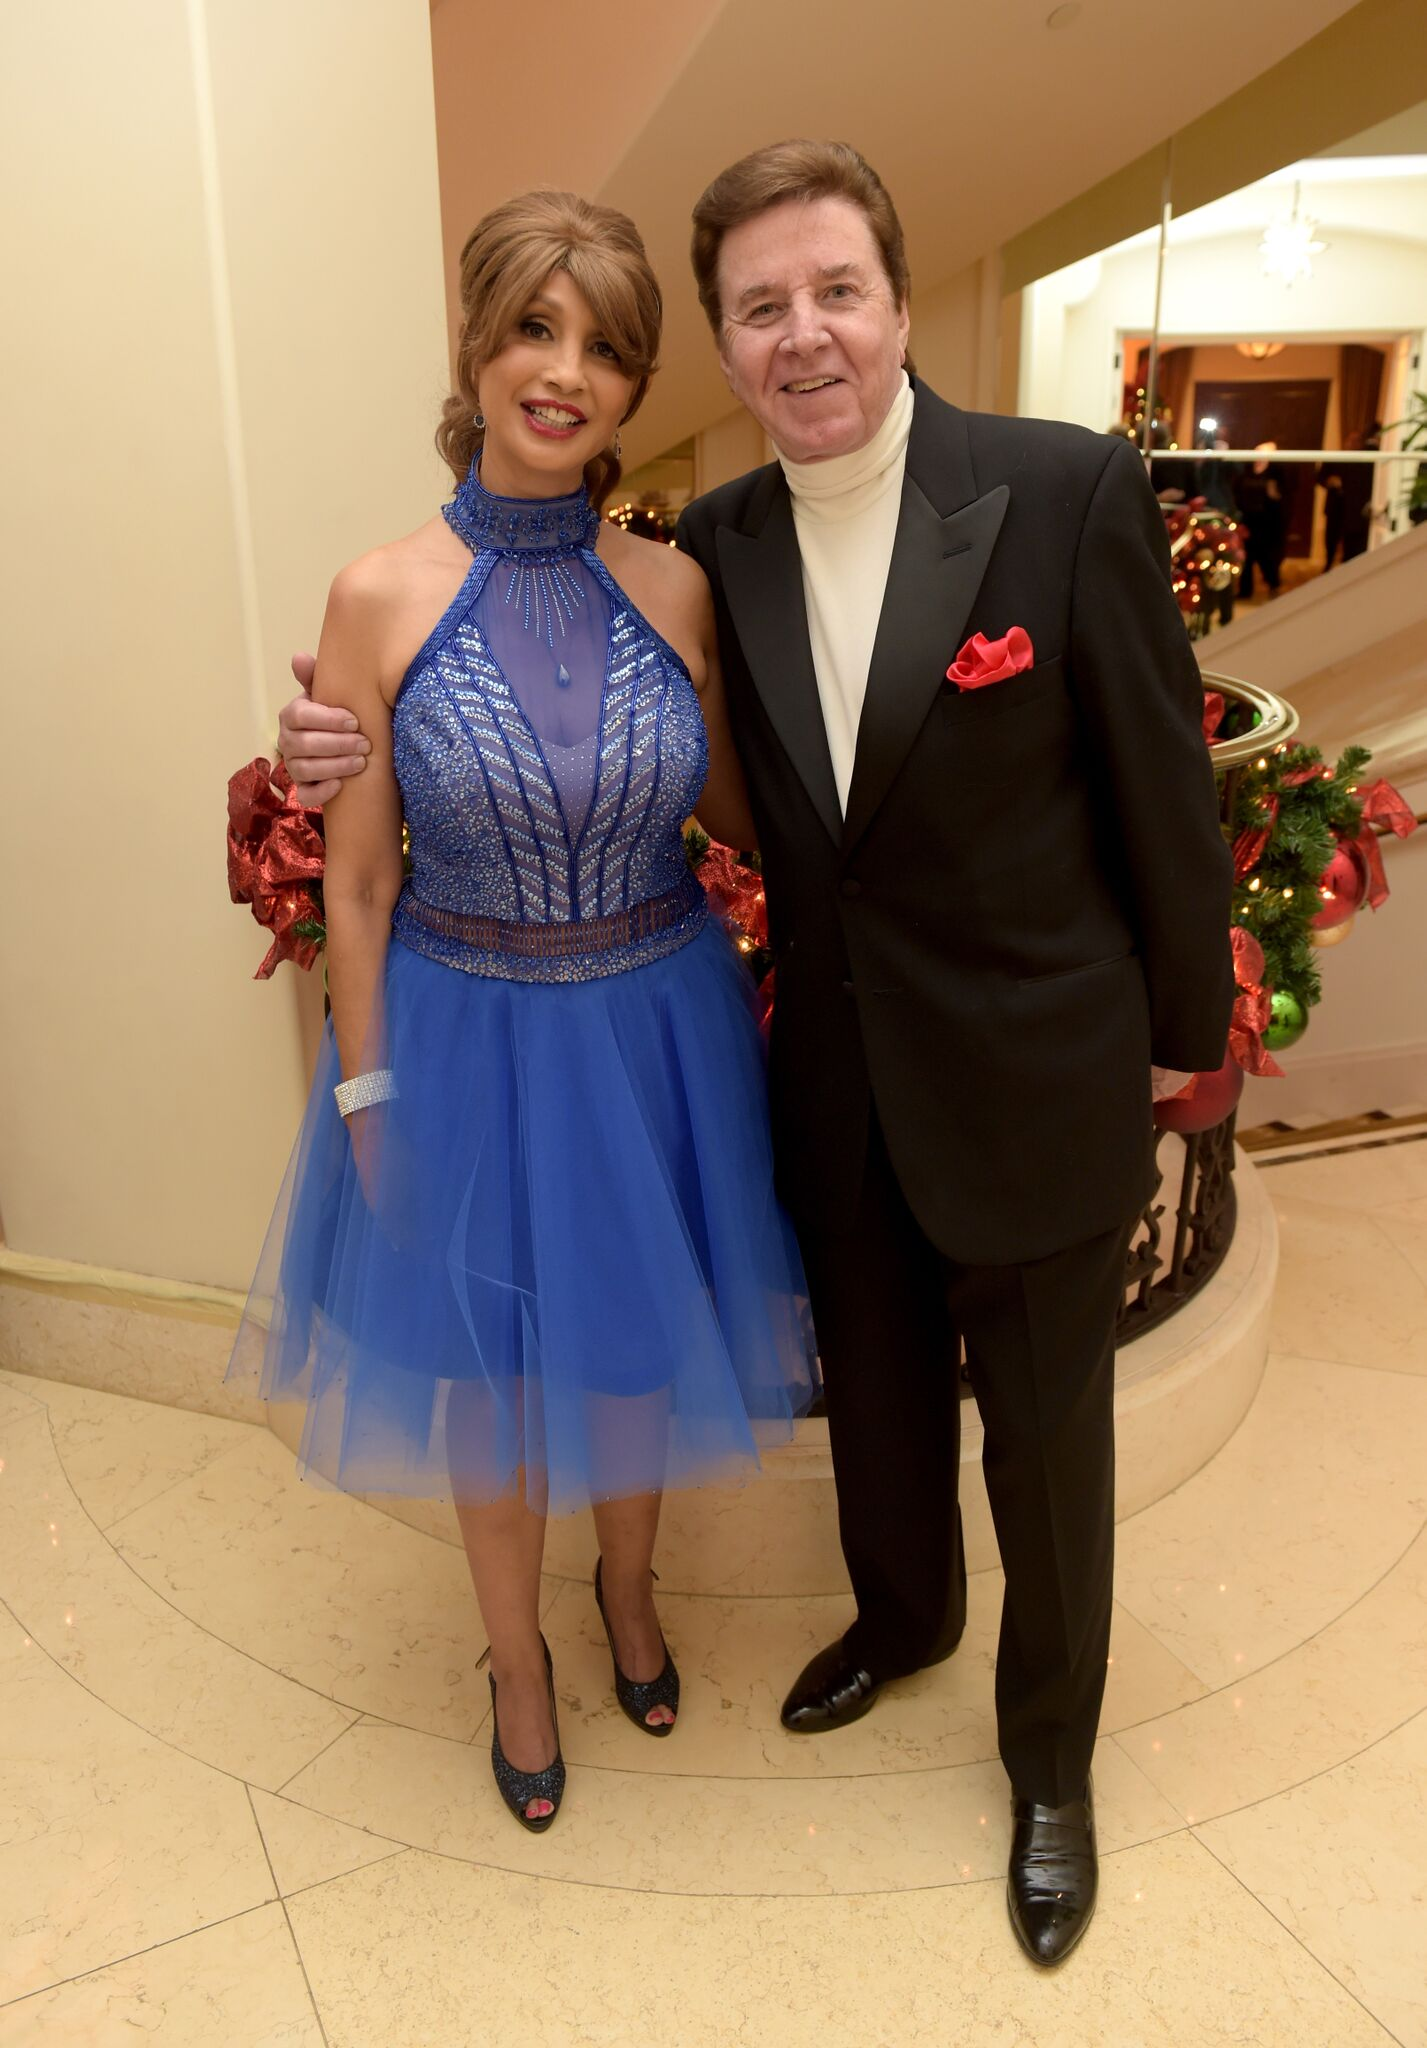 Brigitte Sherman (L) and singer Bobby Sherman attend the Brigitte and Bobby Sherman Children's Foundation's 6th Annual Christmas Gala and Fundraiser | Getty Images / Global Images Ukraine